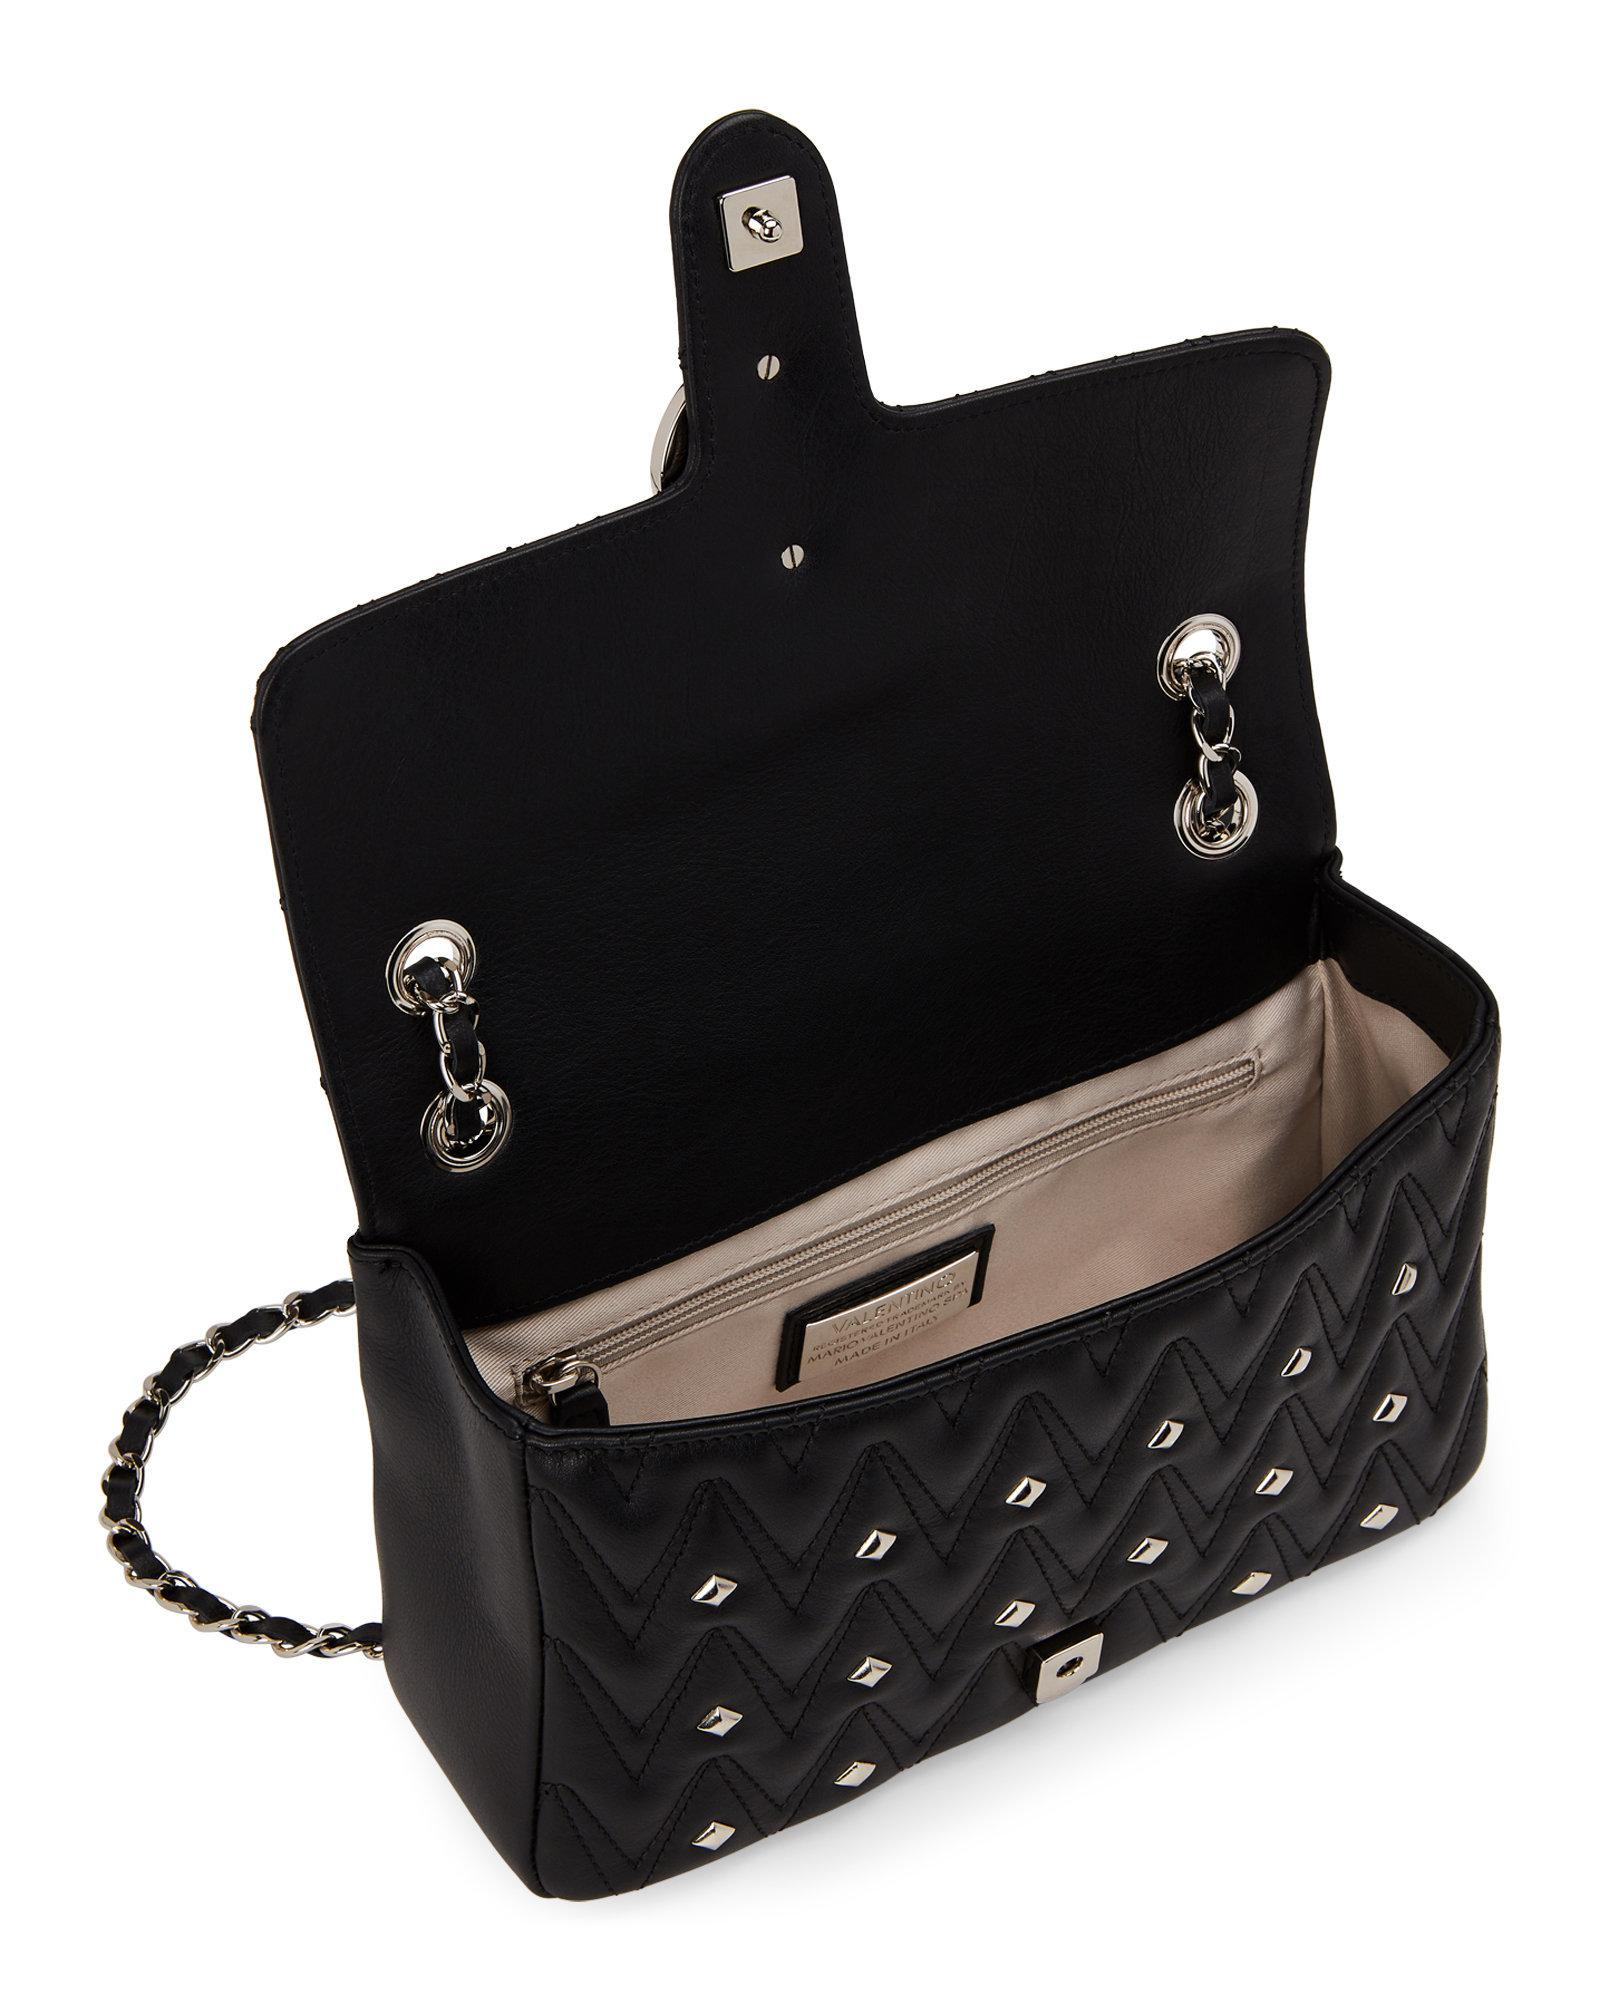 0ebe0534f8d1 Lyst - Valentino By Mario Valentino Black Antoinette Studded Chain ...